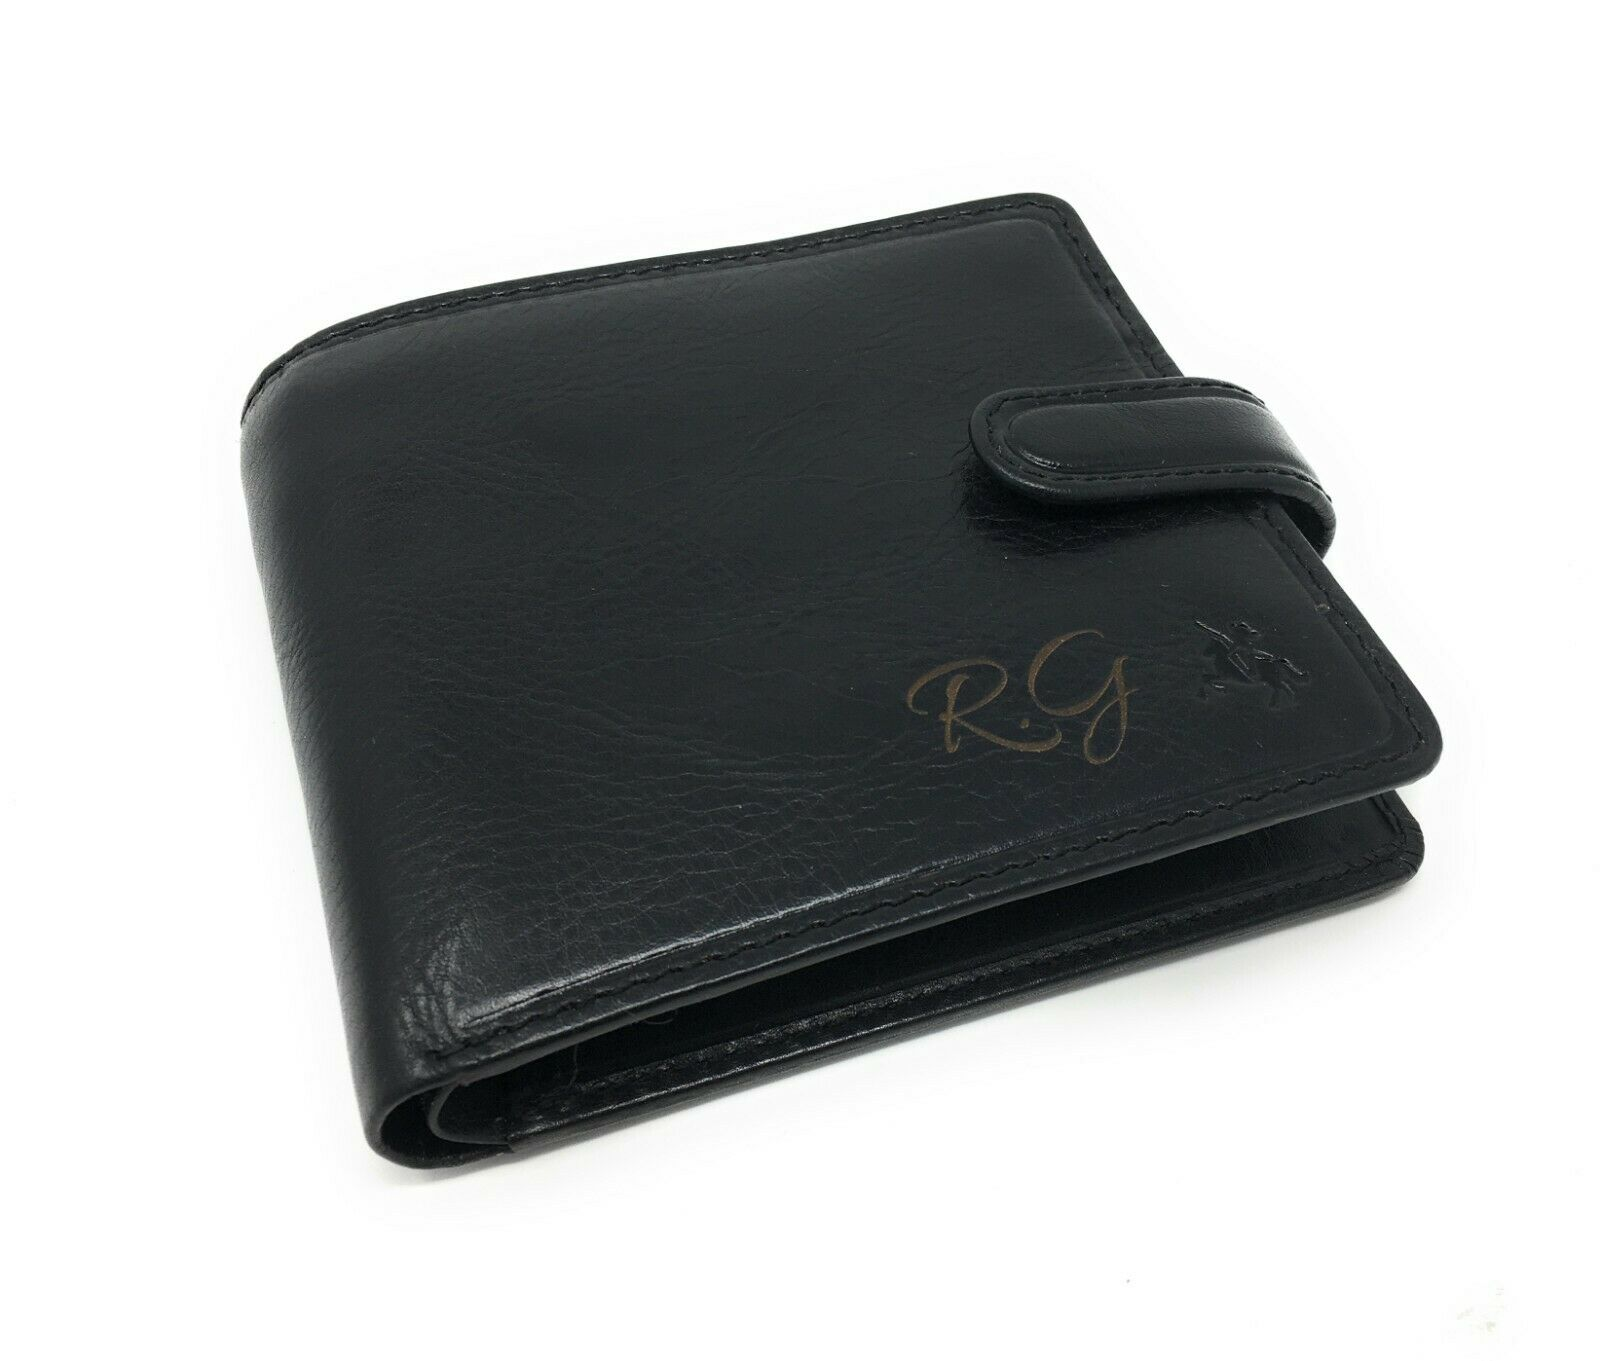 Personalised RFID Premium Black Leather Wallet Free Engraving Any Name/Initials